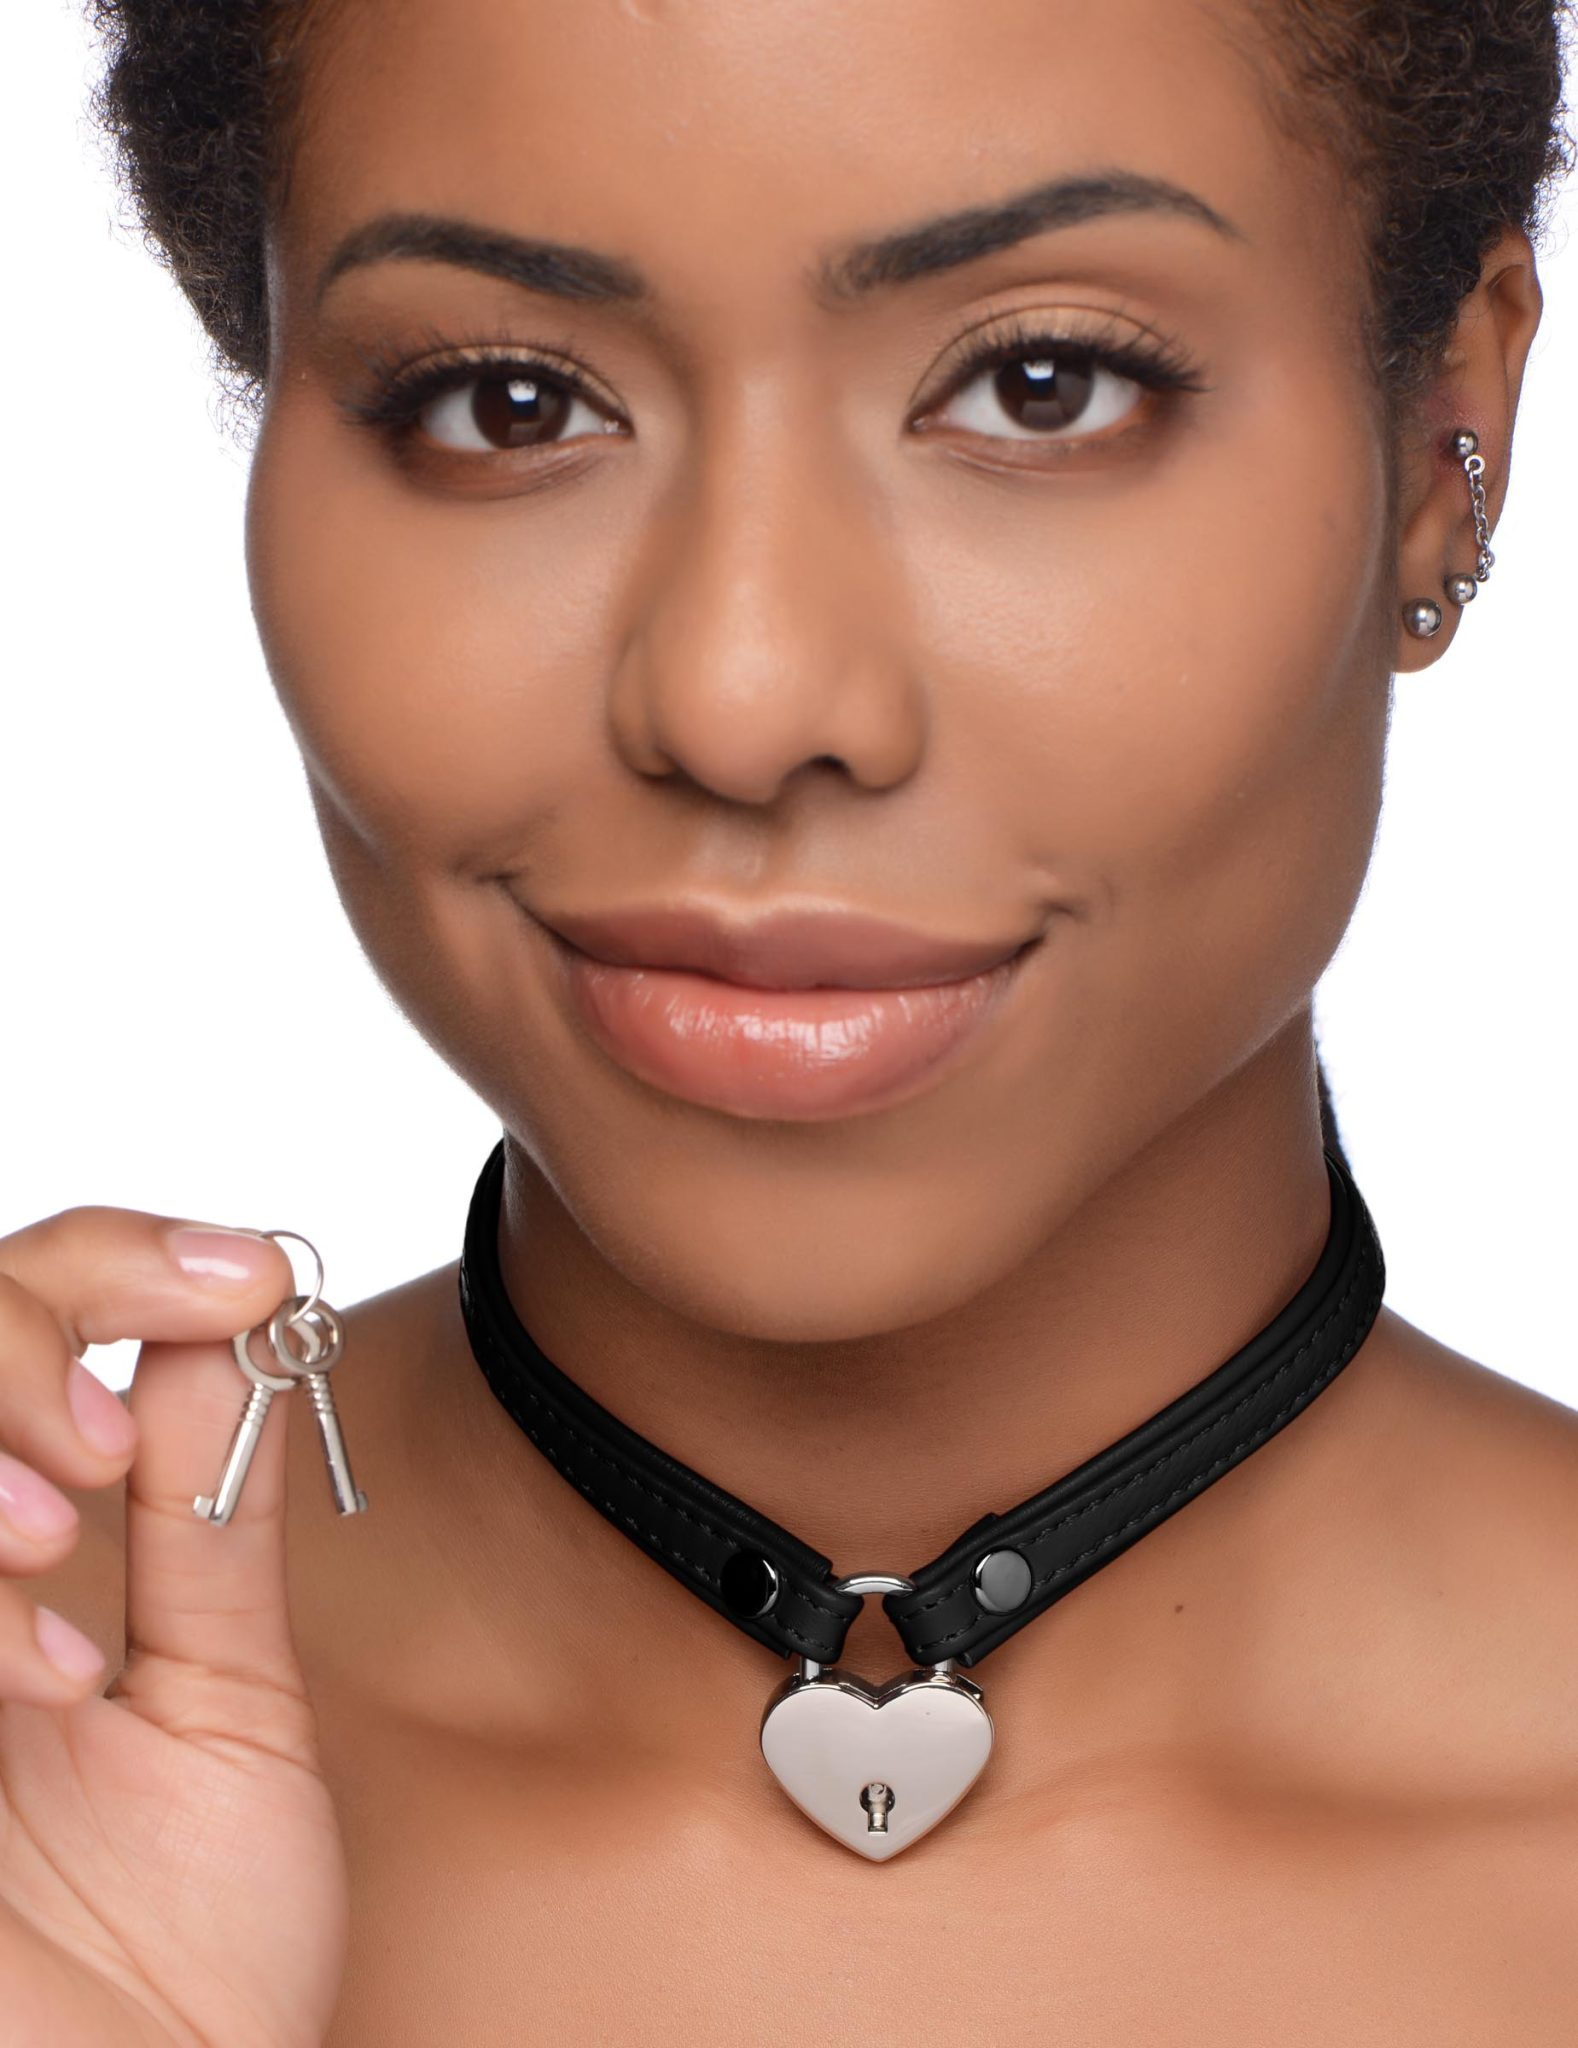 Heart Lock Leather Choker with Lock and Key – Black